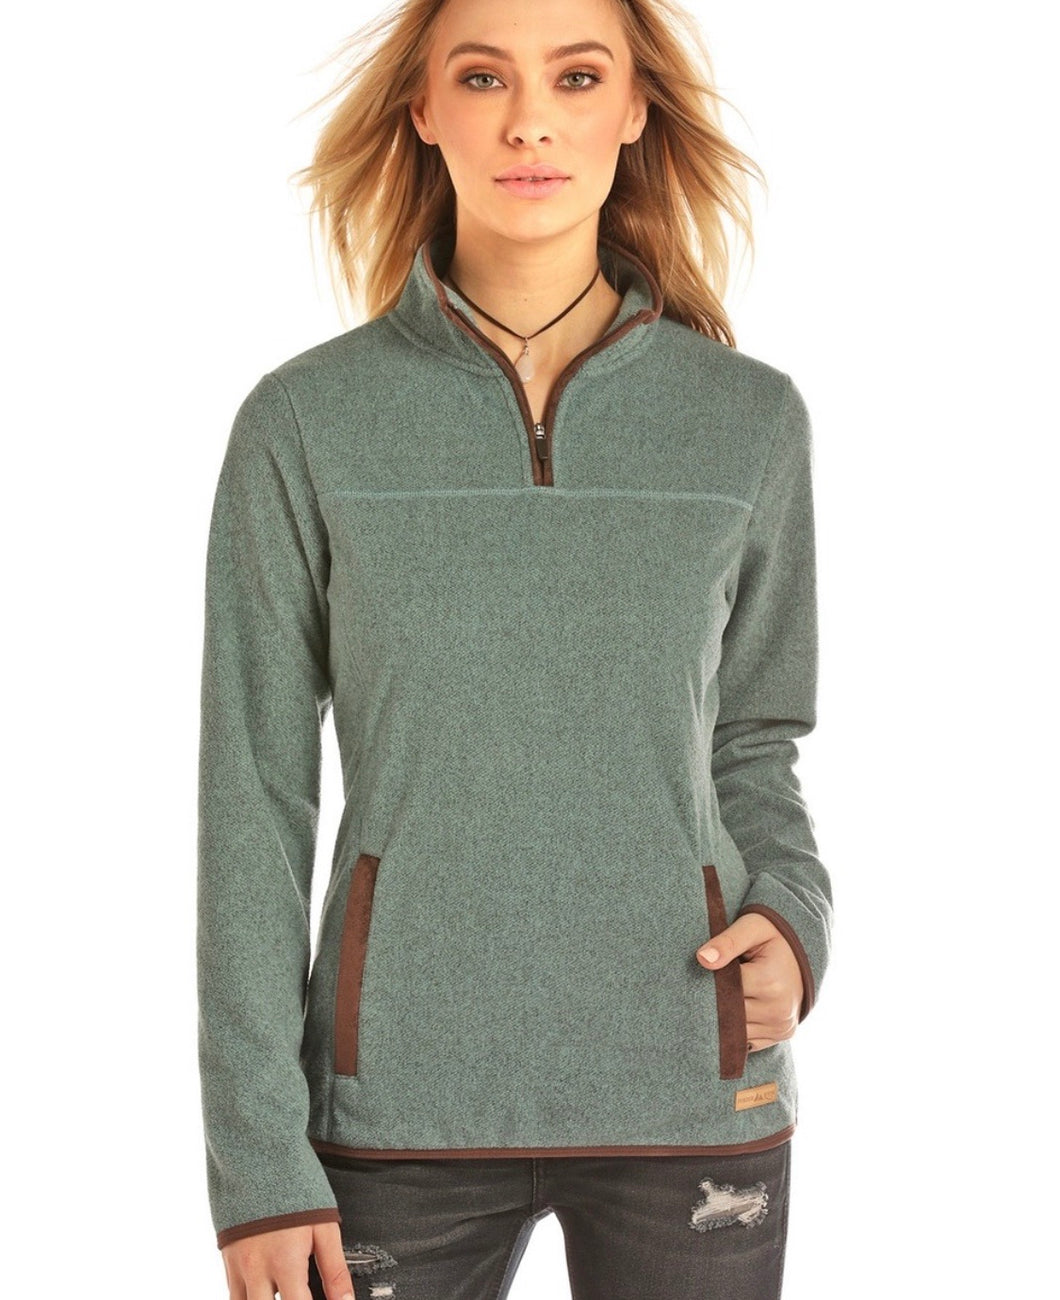 Powder River Teal Pullover